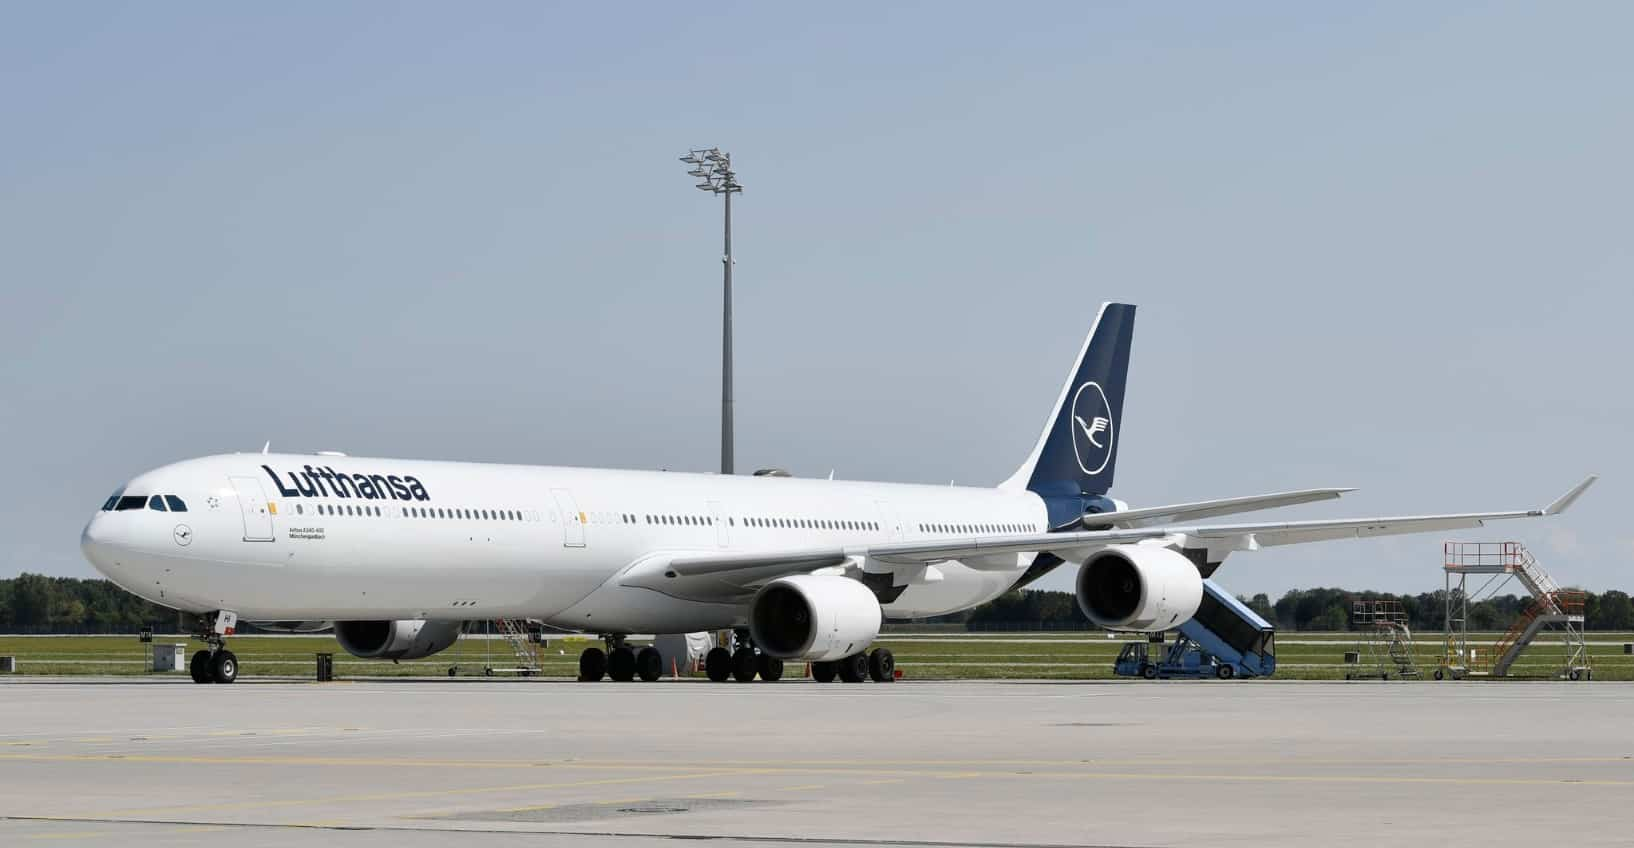 Airbus-A340-600-new-livery-lufthansa